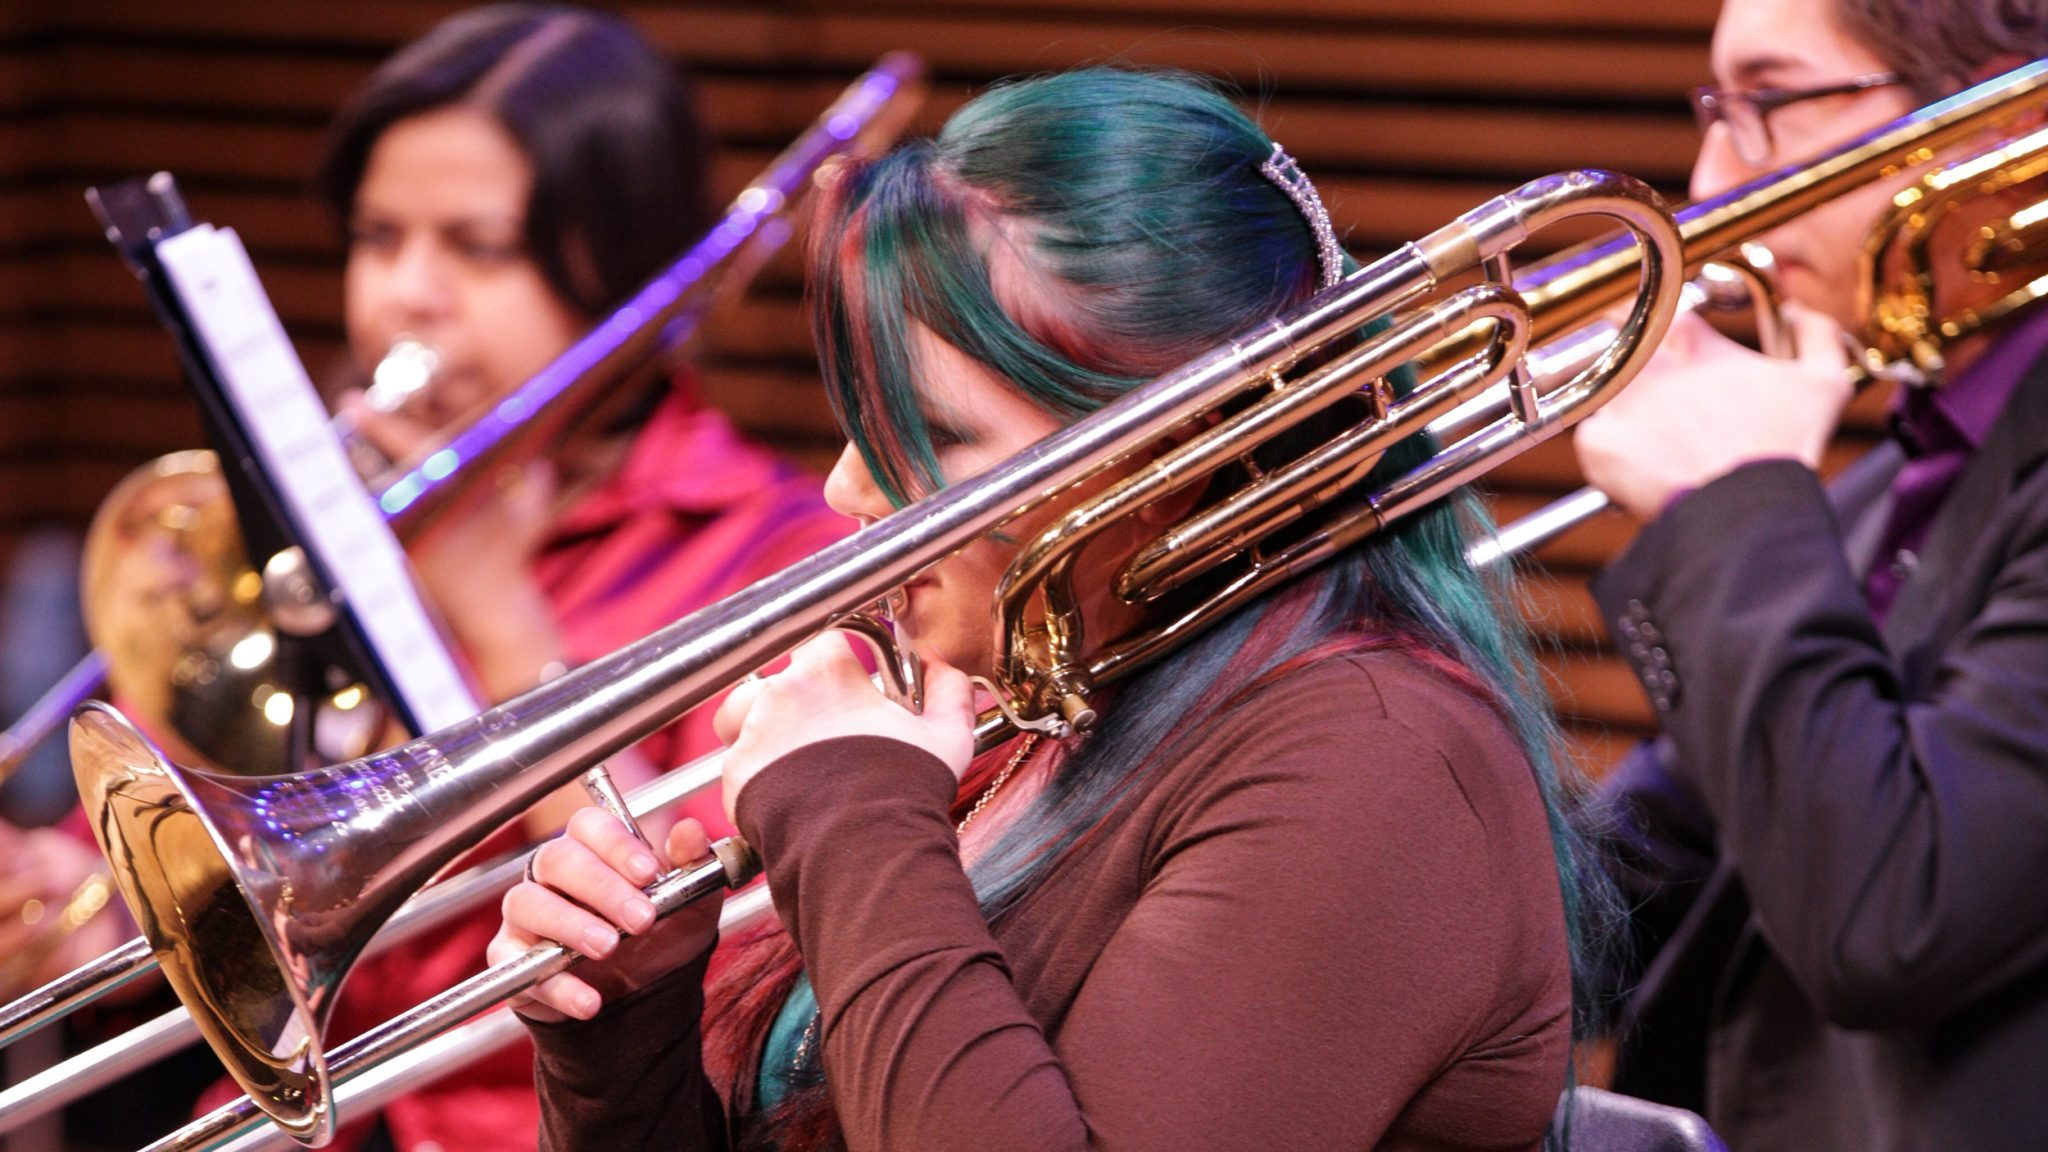 Katja Liebing/Courier Members of the Sembi-Five Quintet give their end of semester performance in Westerbek Hall at Pasadena City College on Thursday, December 3, 2015.